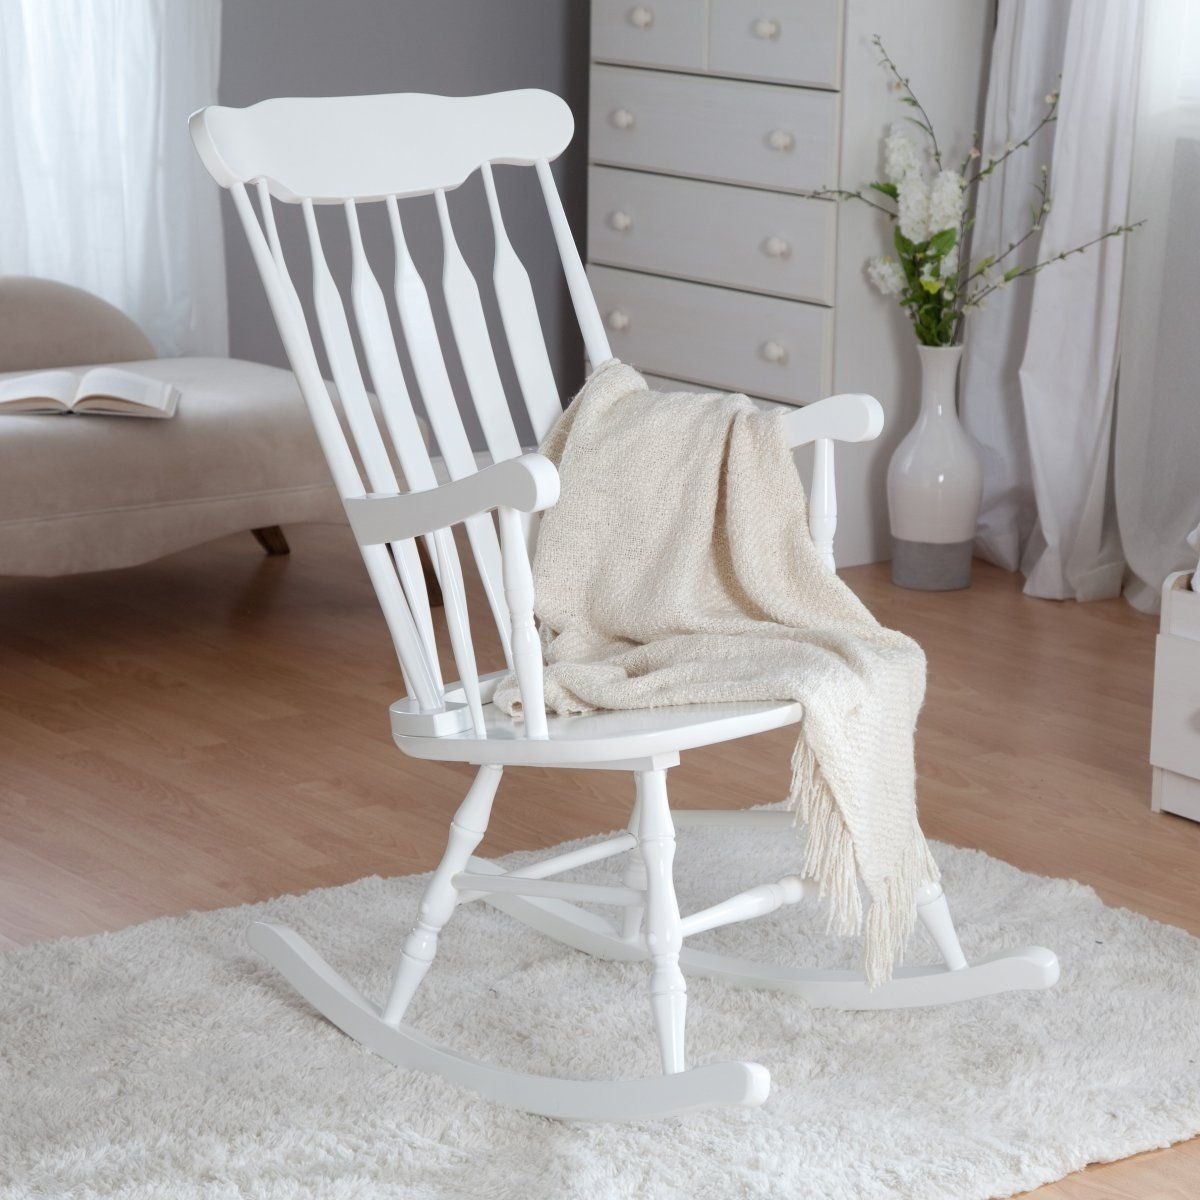 Kidkraft Nursery Rocker – White – Rocking Chairs At Hayneedle Within White Wicker Rocking Chair For Nursery (View 7 of 15)